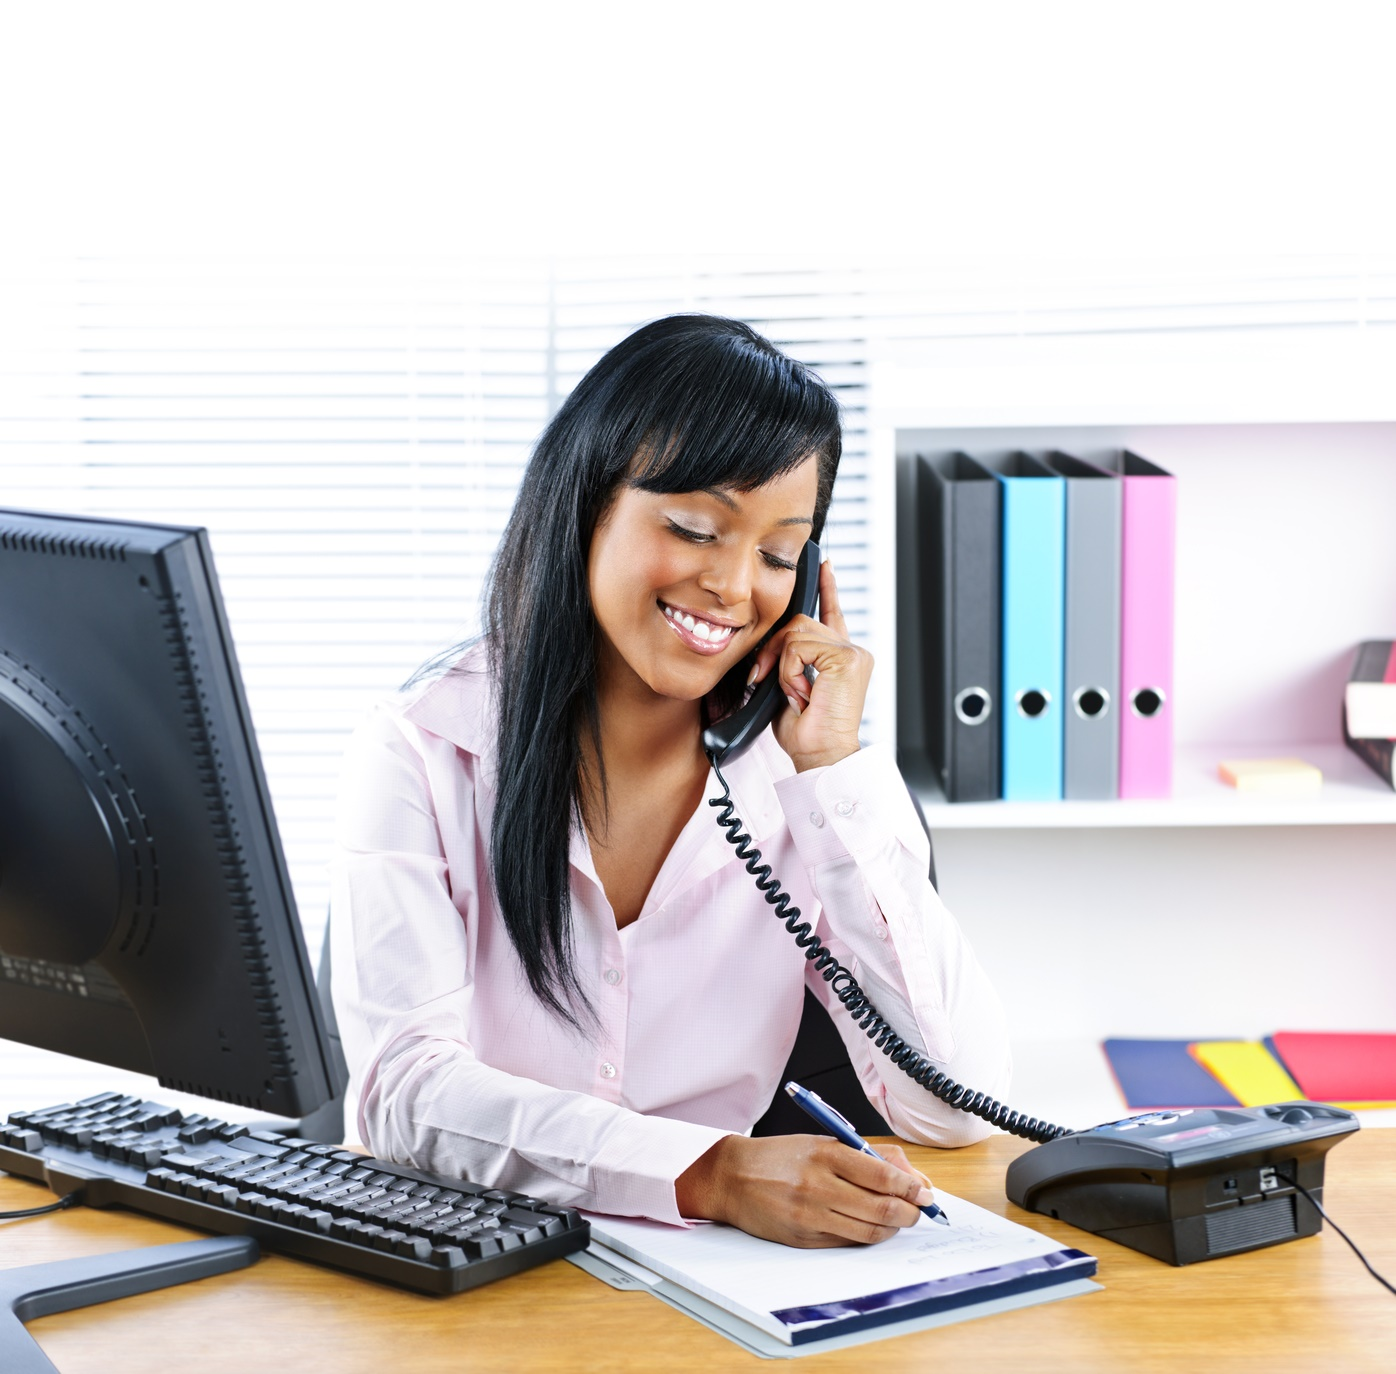 Smiling young business woman on phone taking notes in office